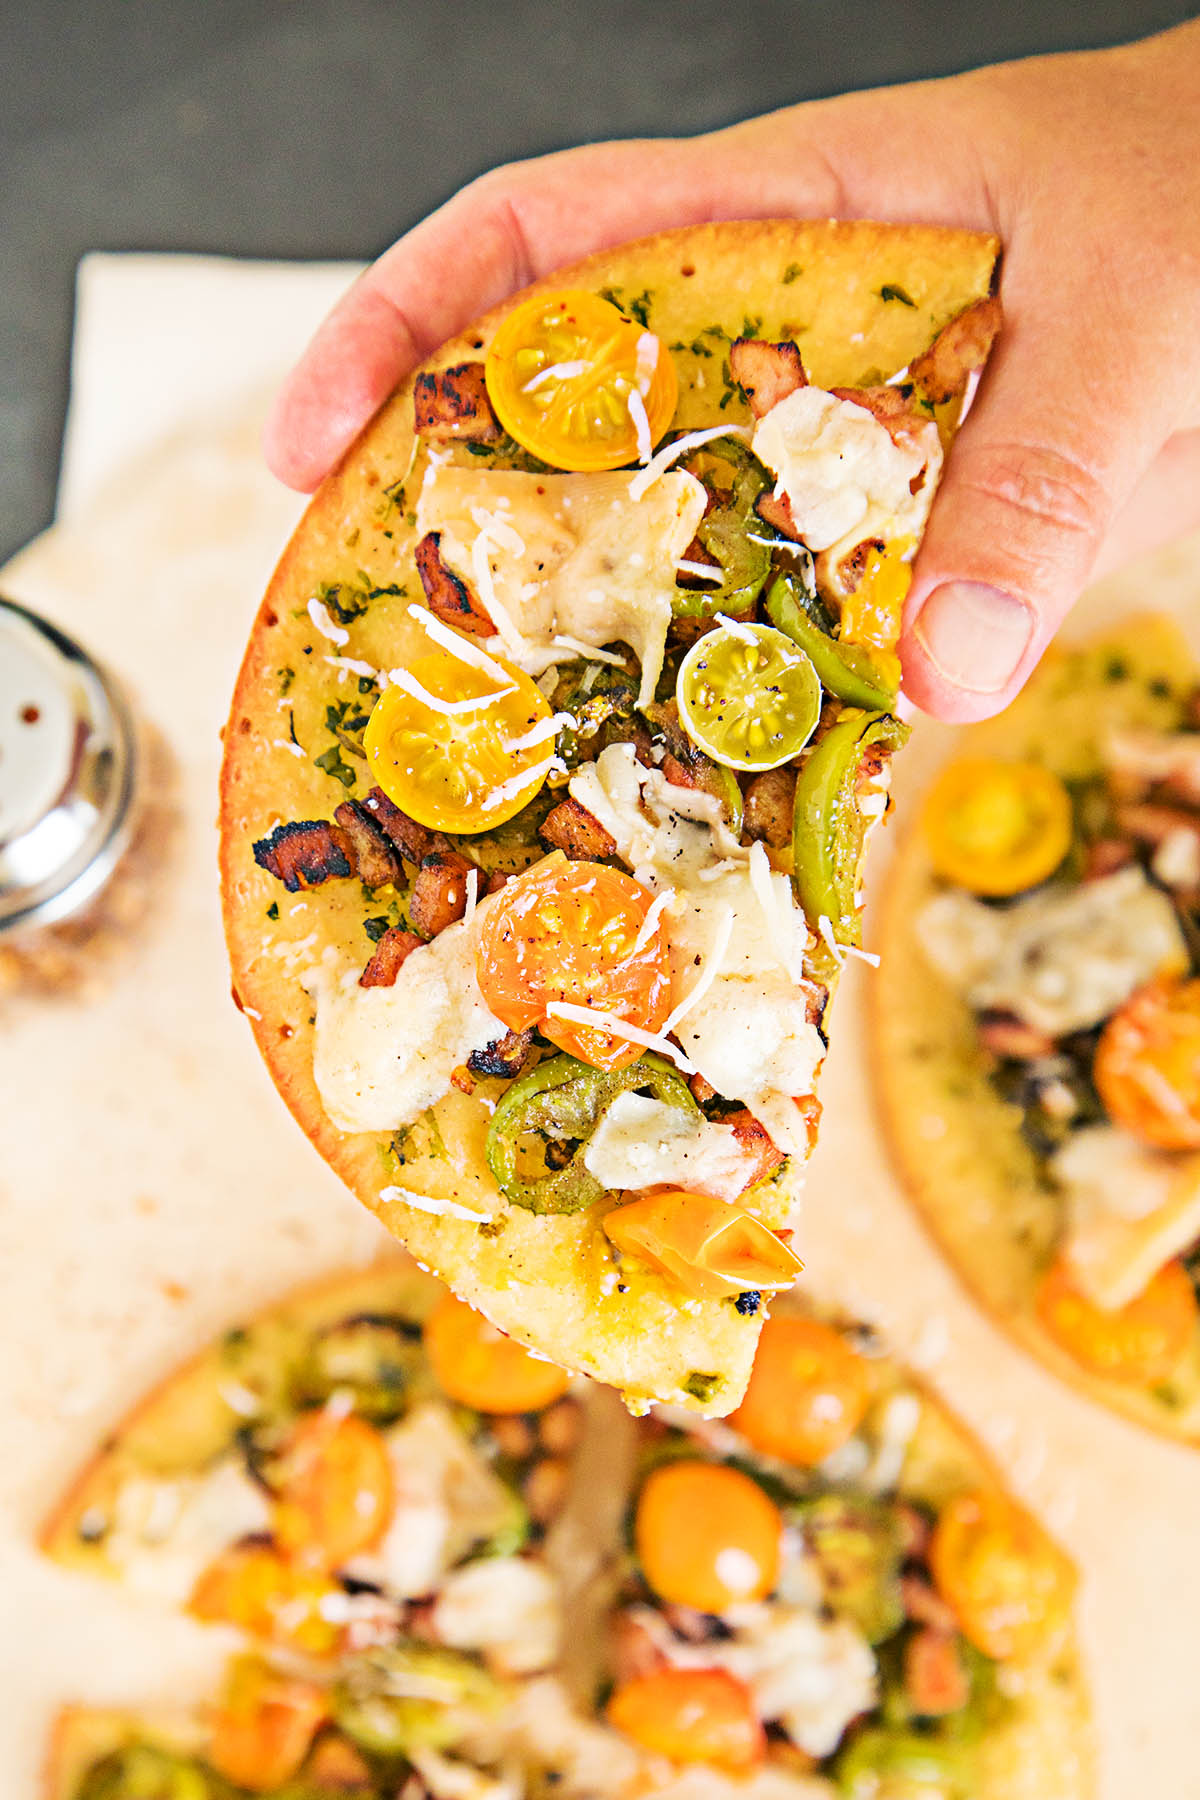 Mini Pizzas with Smoked Ham, Jalapenos and Cherry Tomatoes – Recipe